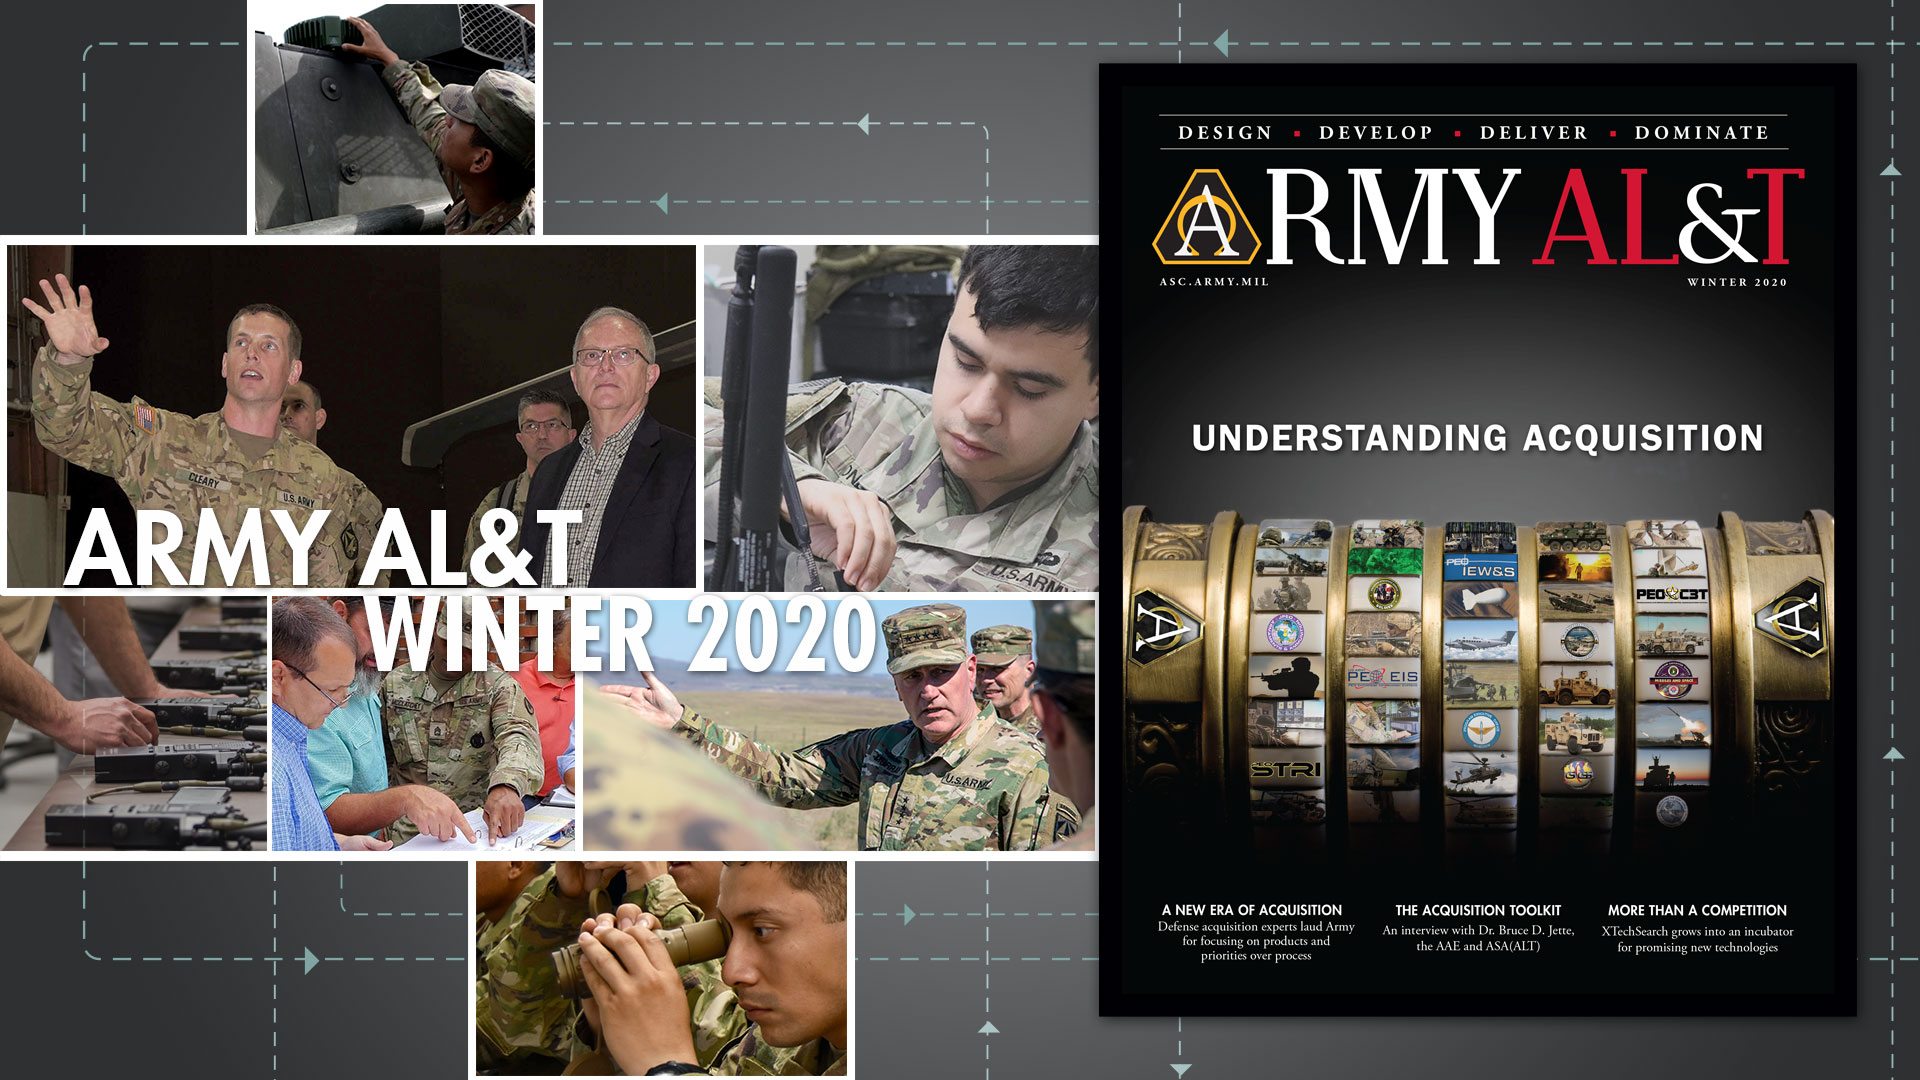 Army AL&T Winter 2020